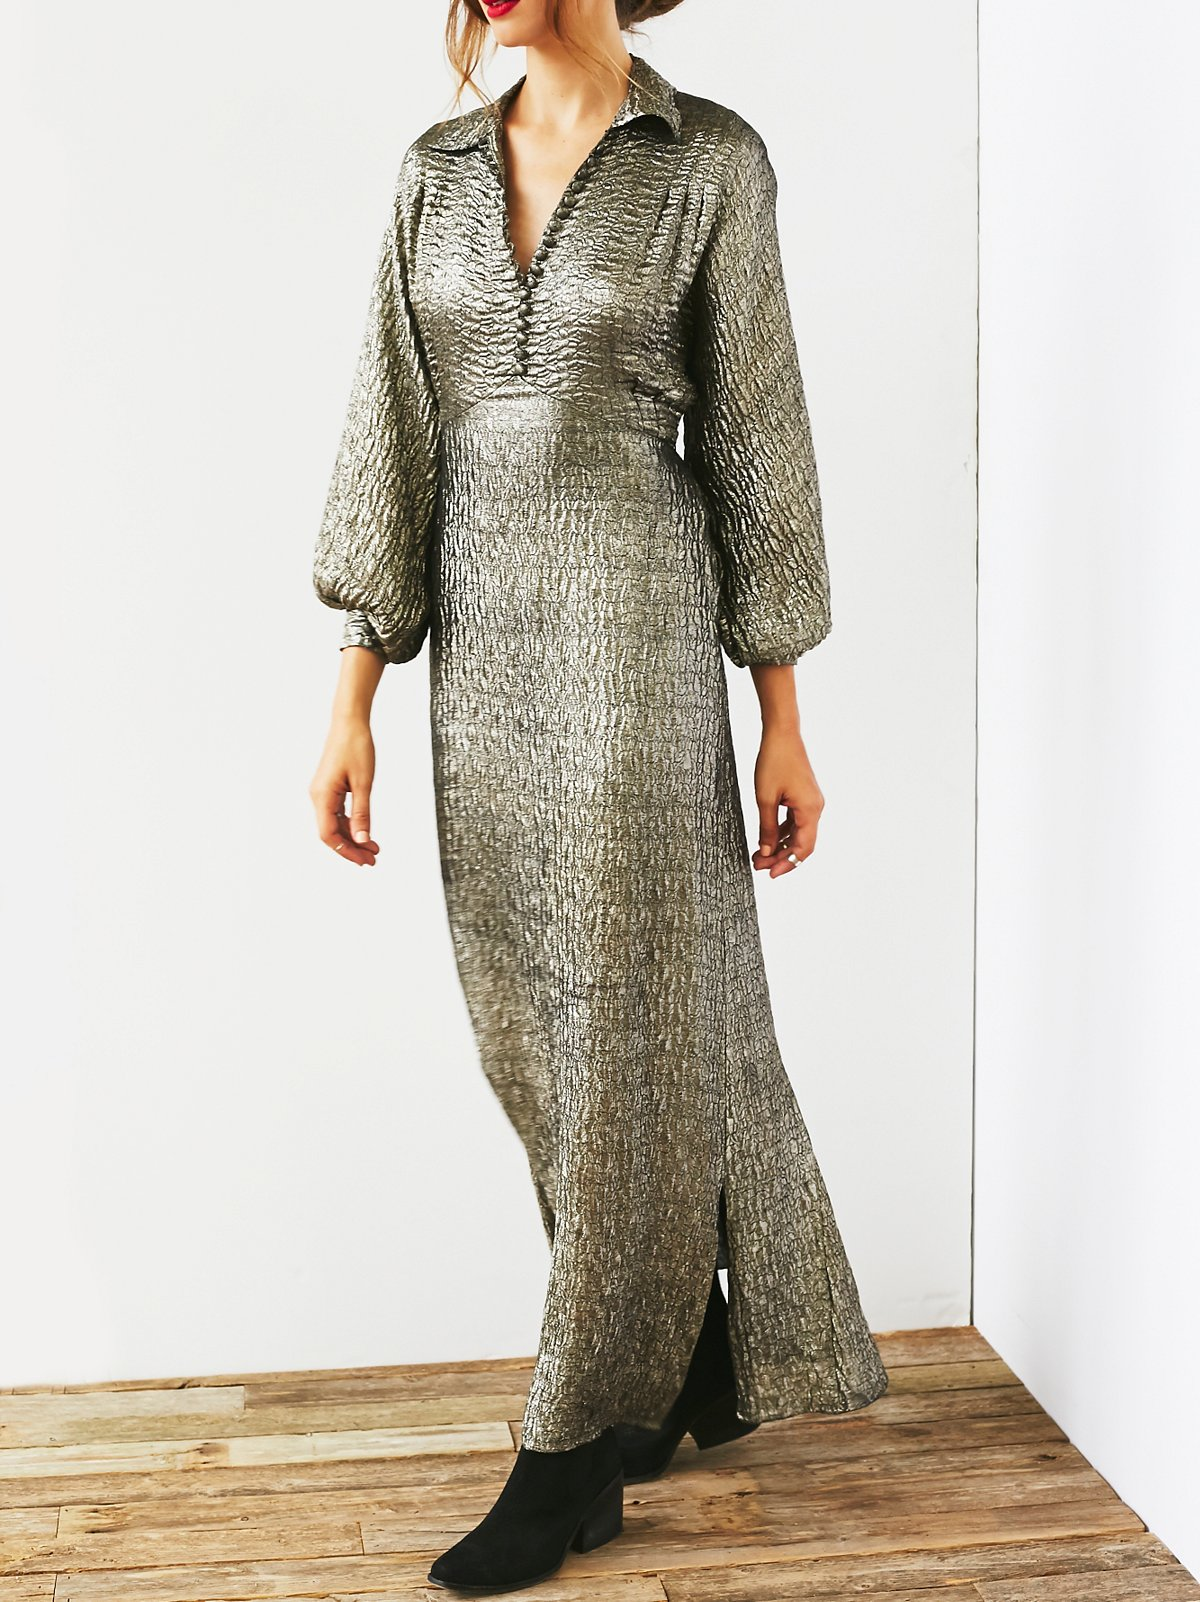 Vintage 1930s Metallic Dress